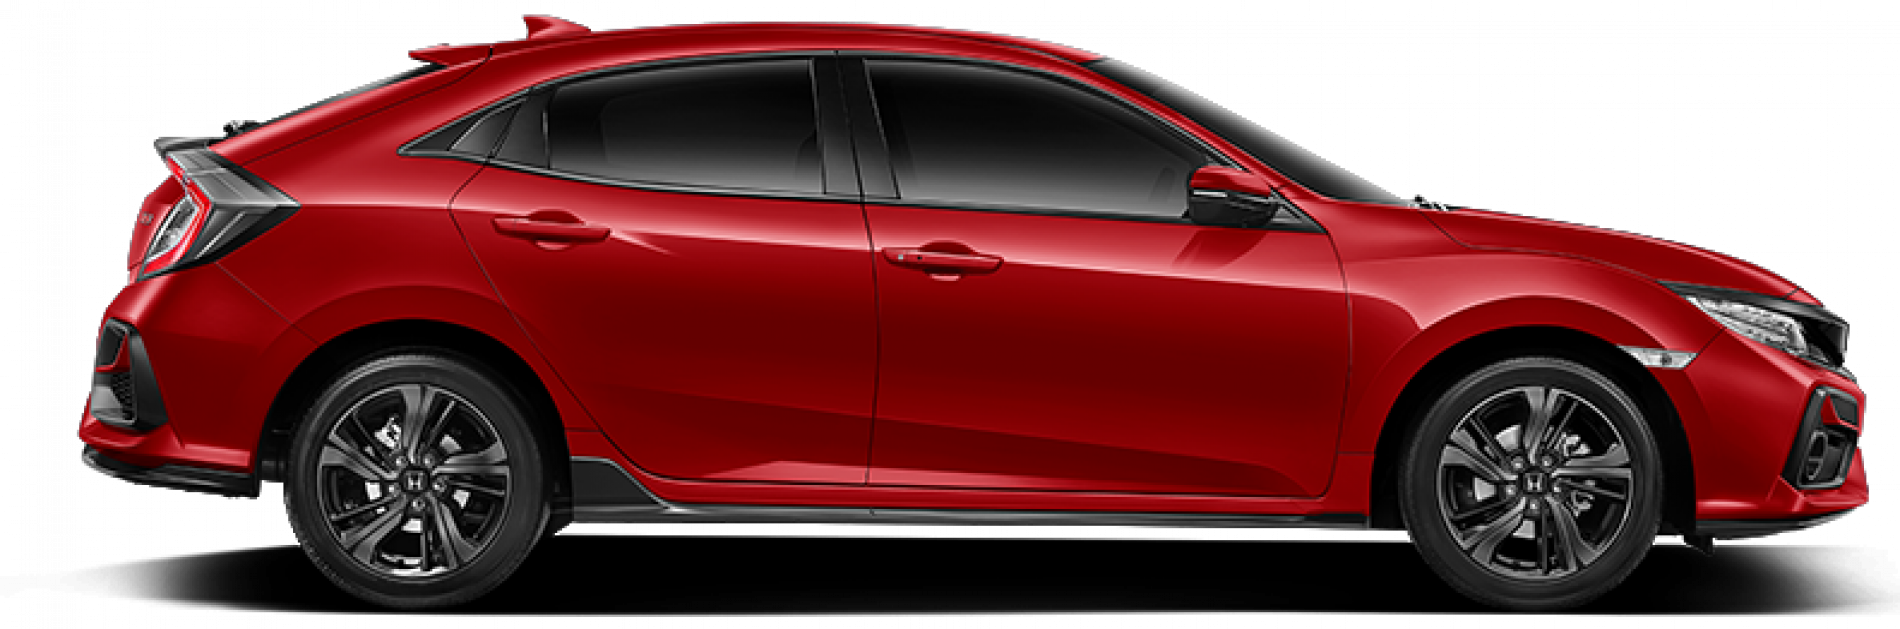 civic_red__1580799771022